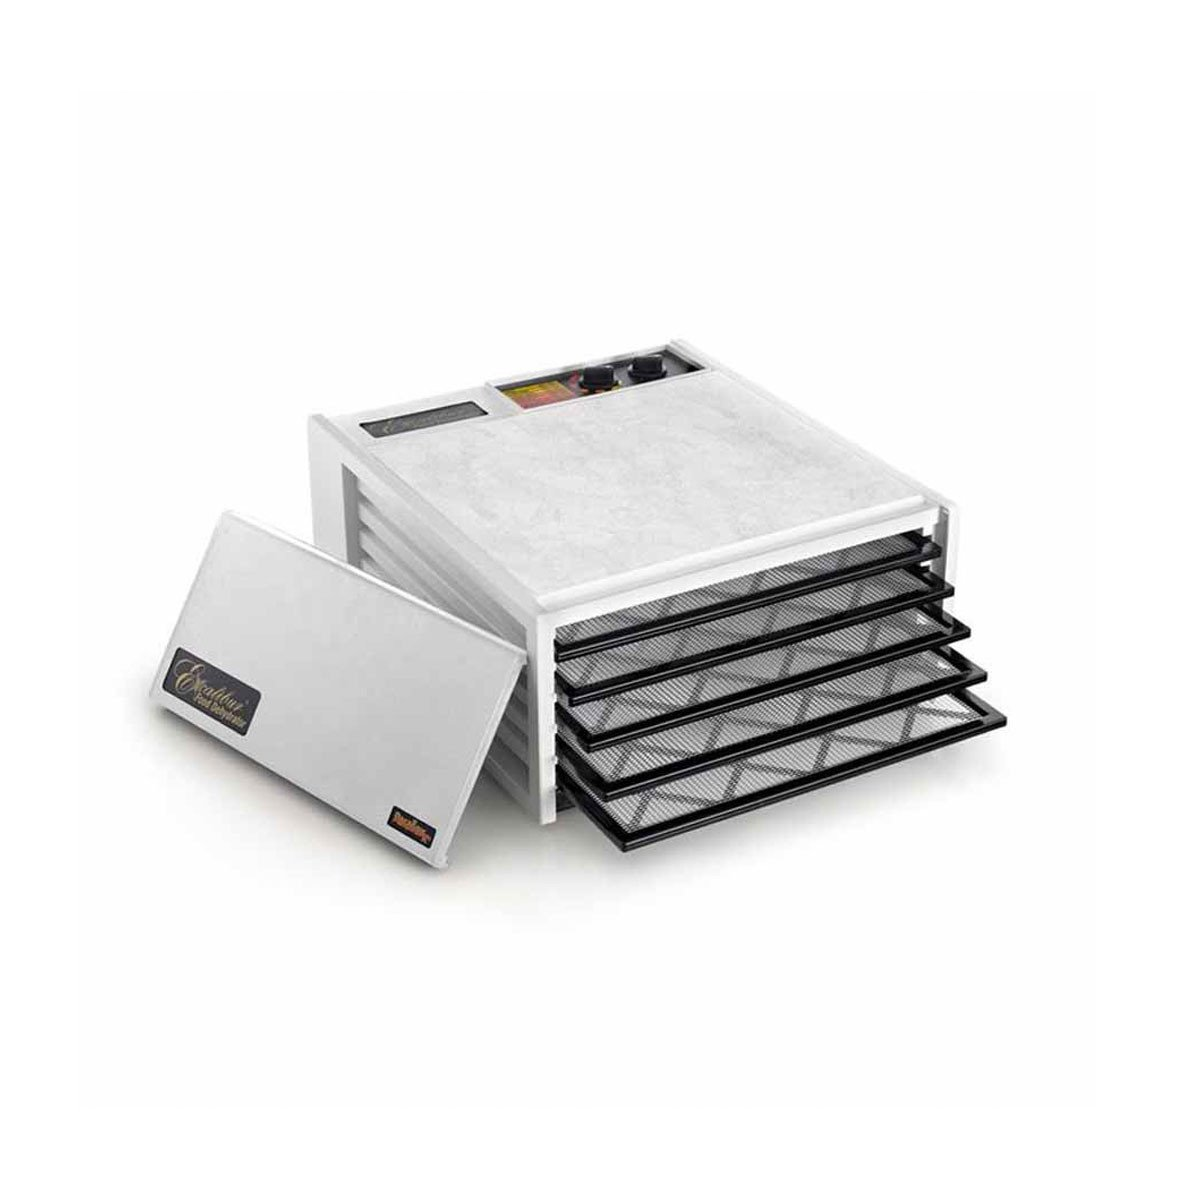 Excalibur Dehydrator 5 Tray in White or Black  White / Yes Timer - Excalibur Australia - Little Earth Nest - 2